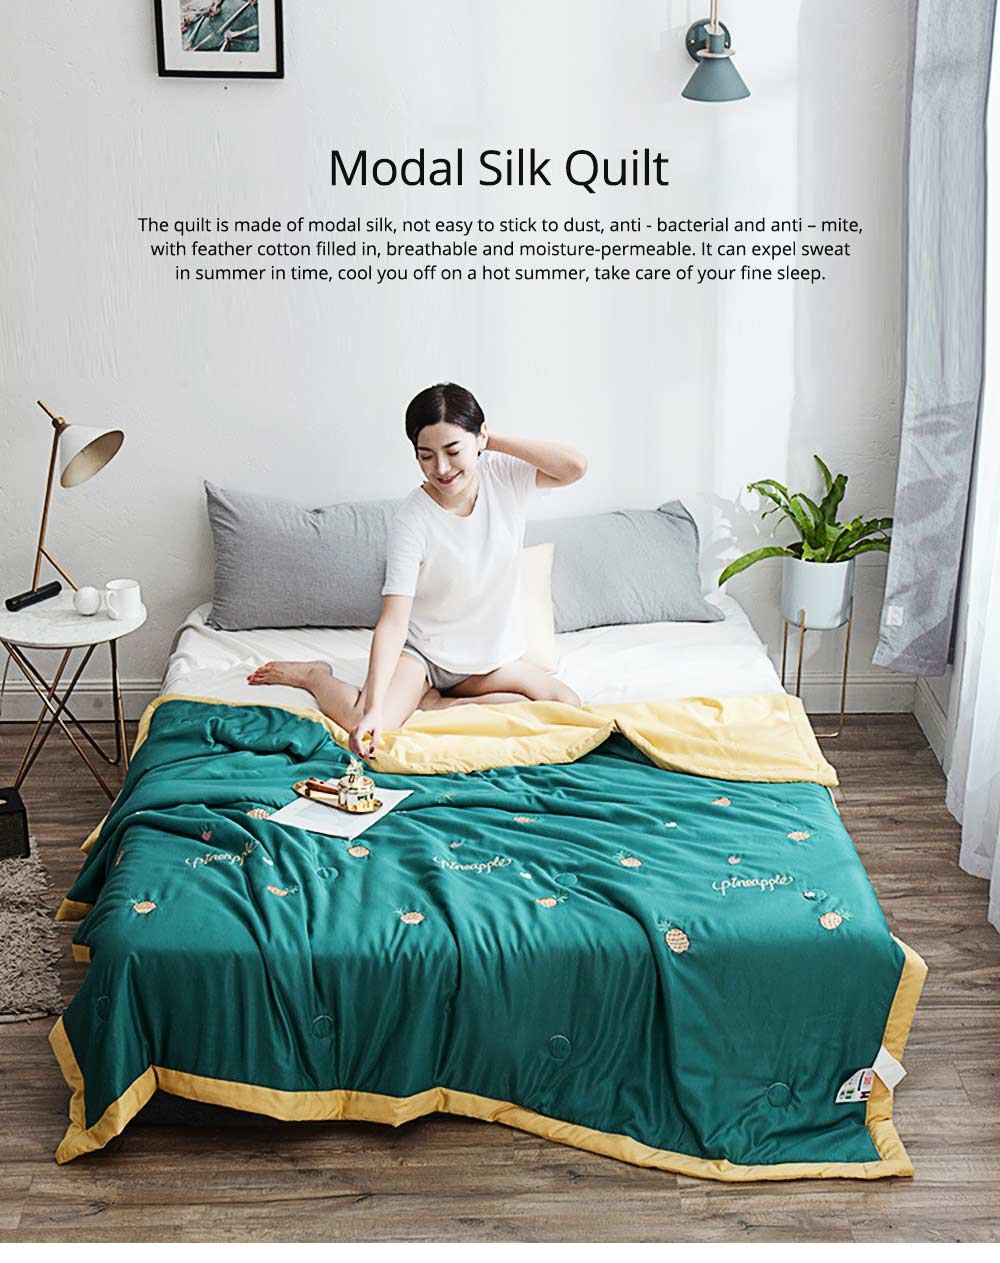 Modal Silk Embroidered Quilt for Summer Pure Air Conditioning Quilt for Two Person 0